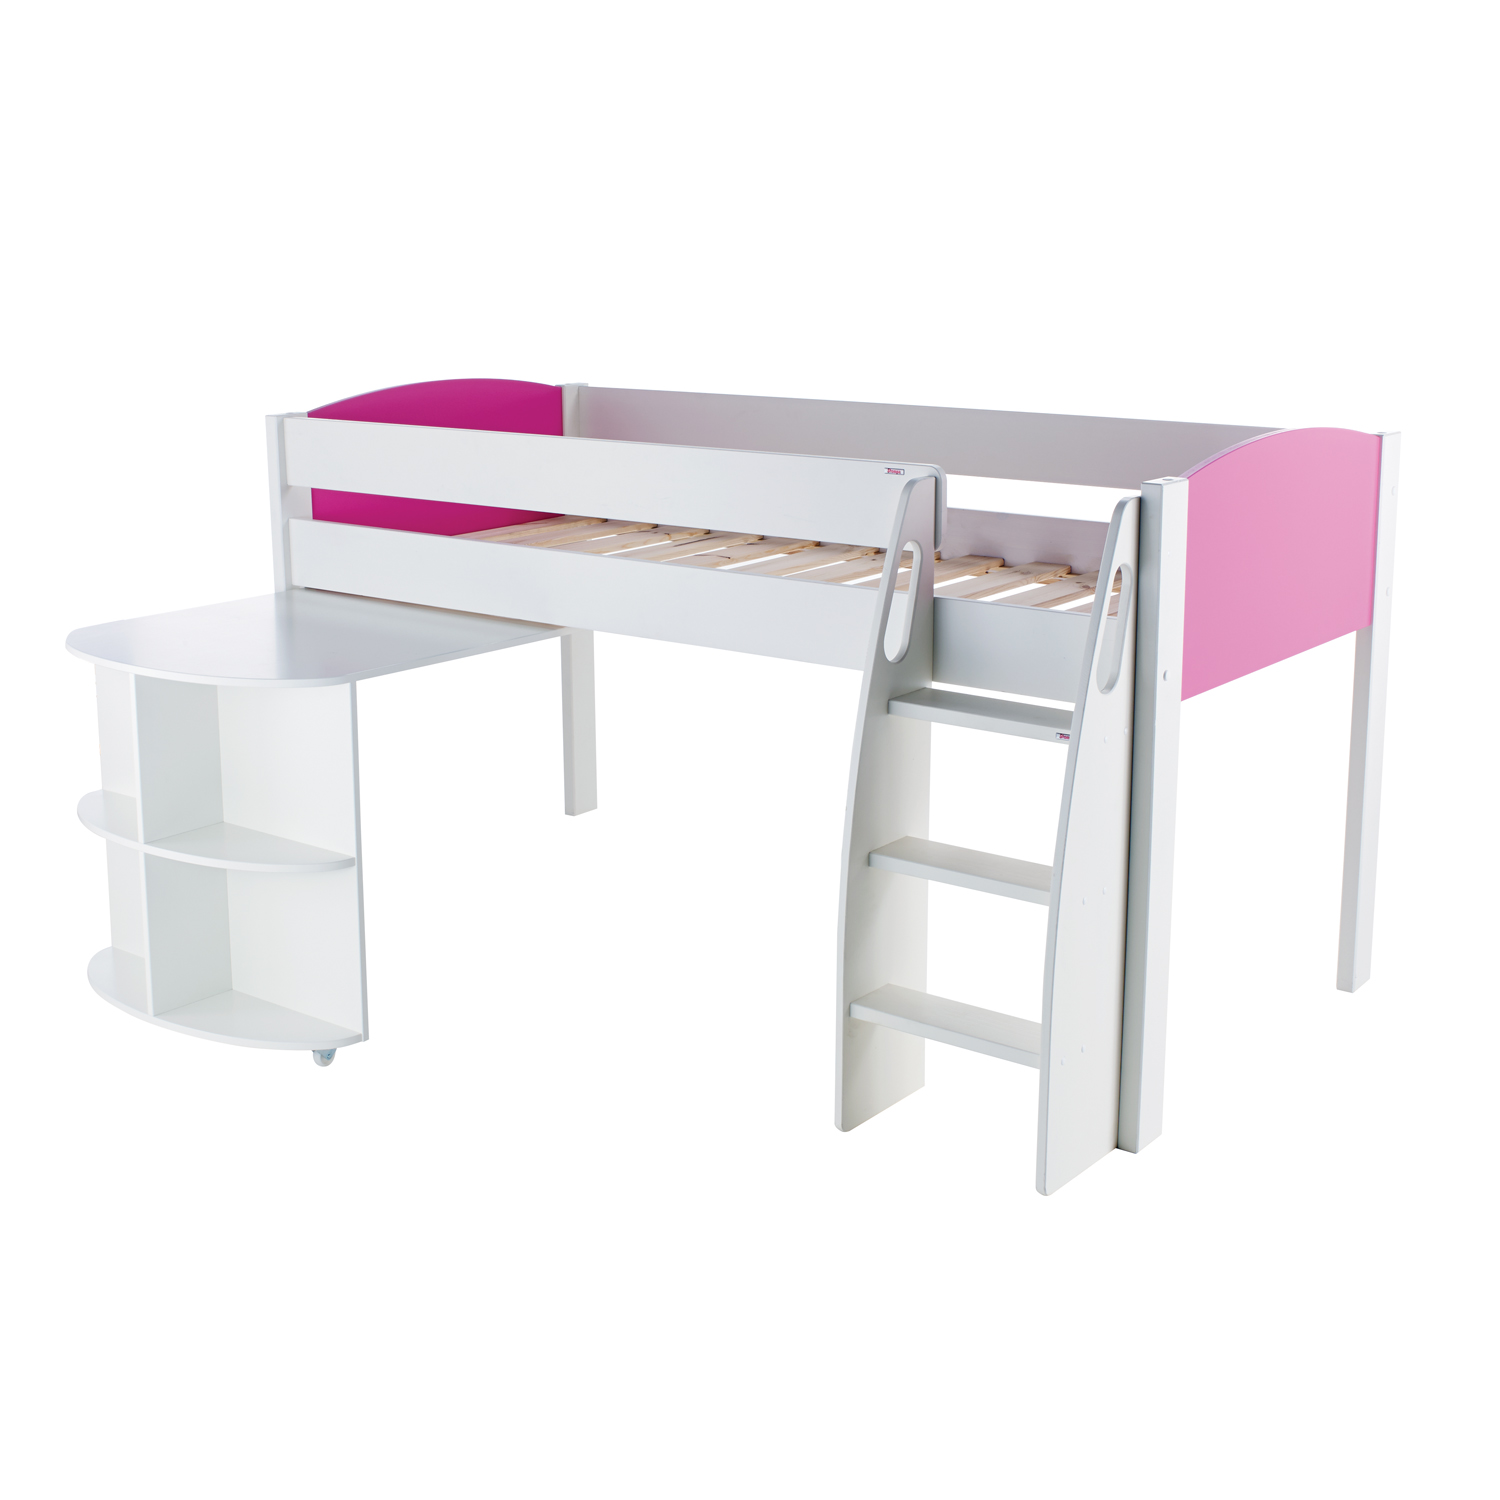 Stompa Duo Uno S Midsleeper And Pull Out Desk Pink